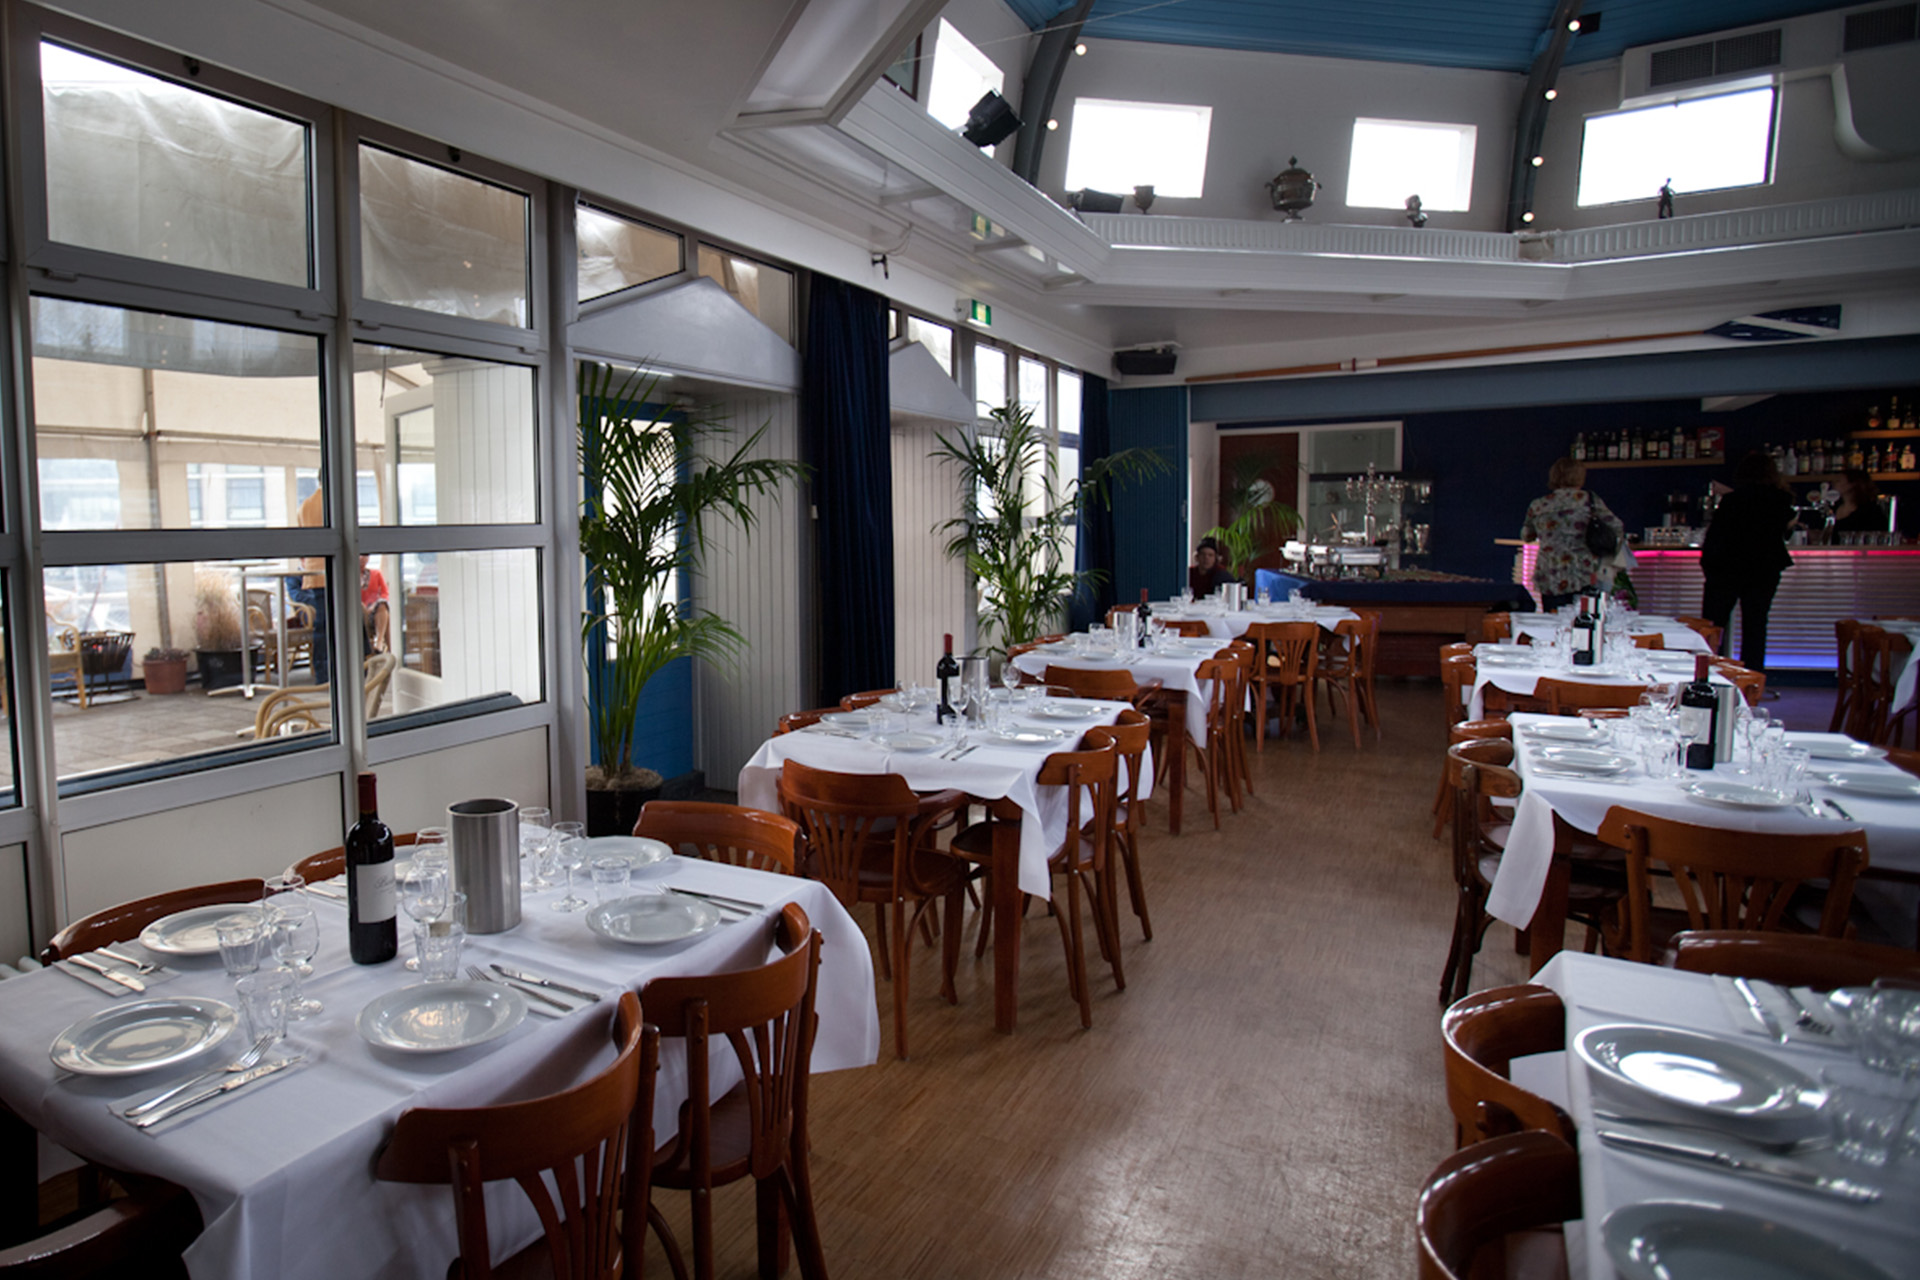 Diner opstelling Amstelzaal